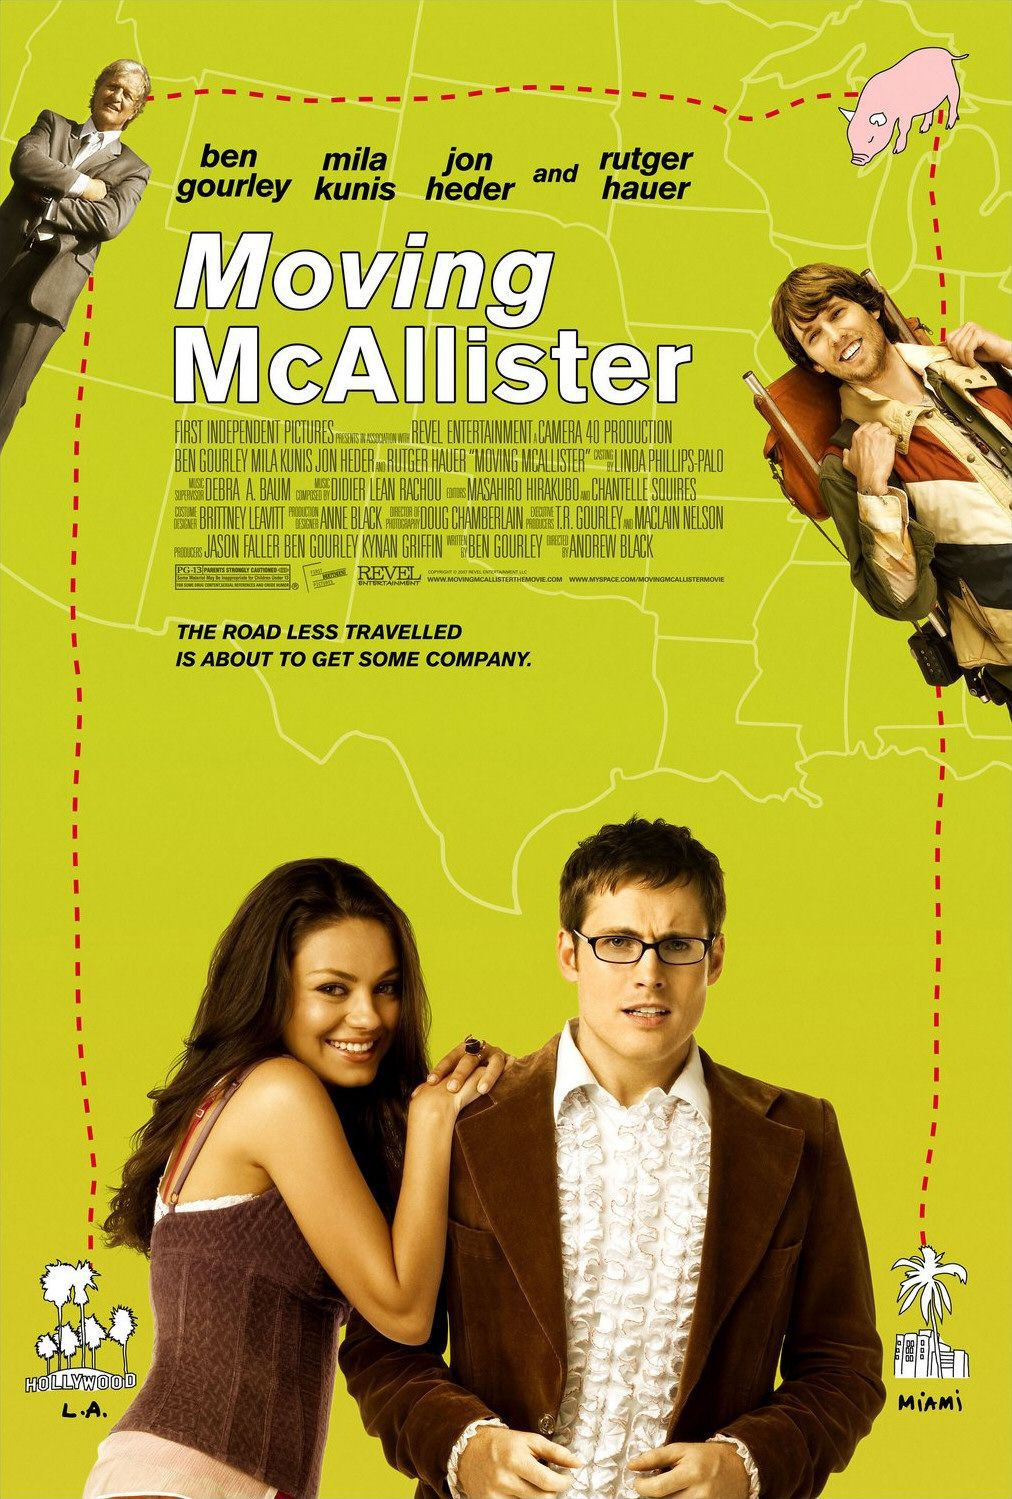 Moving McAllister - film poster